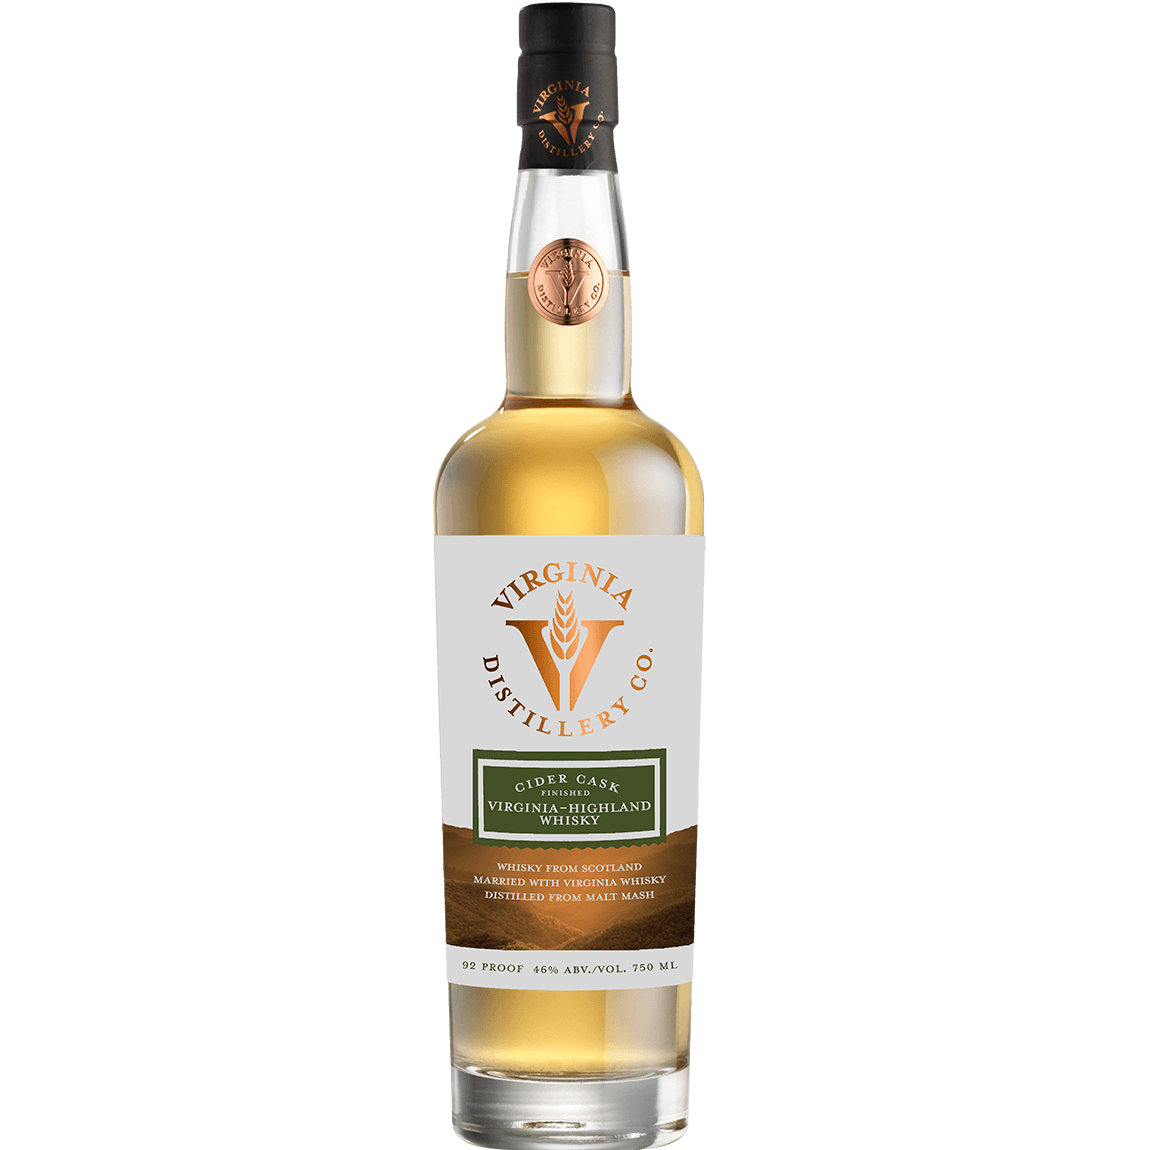 Cider Cask Finished Virginia-Highland Whisky